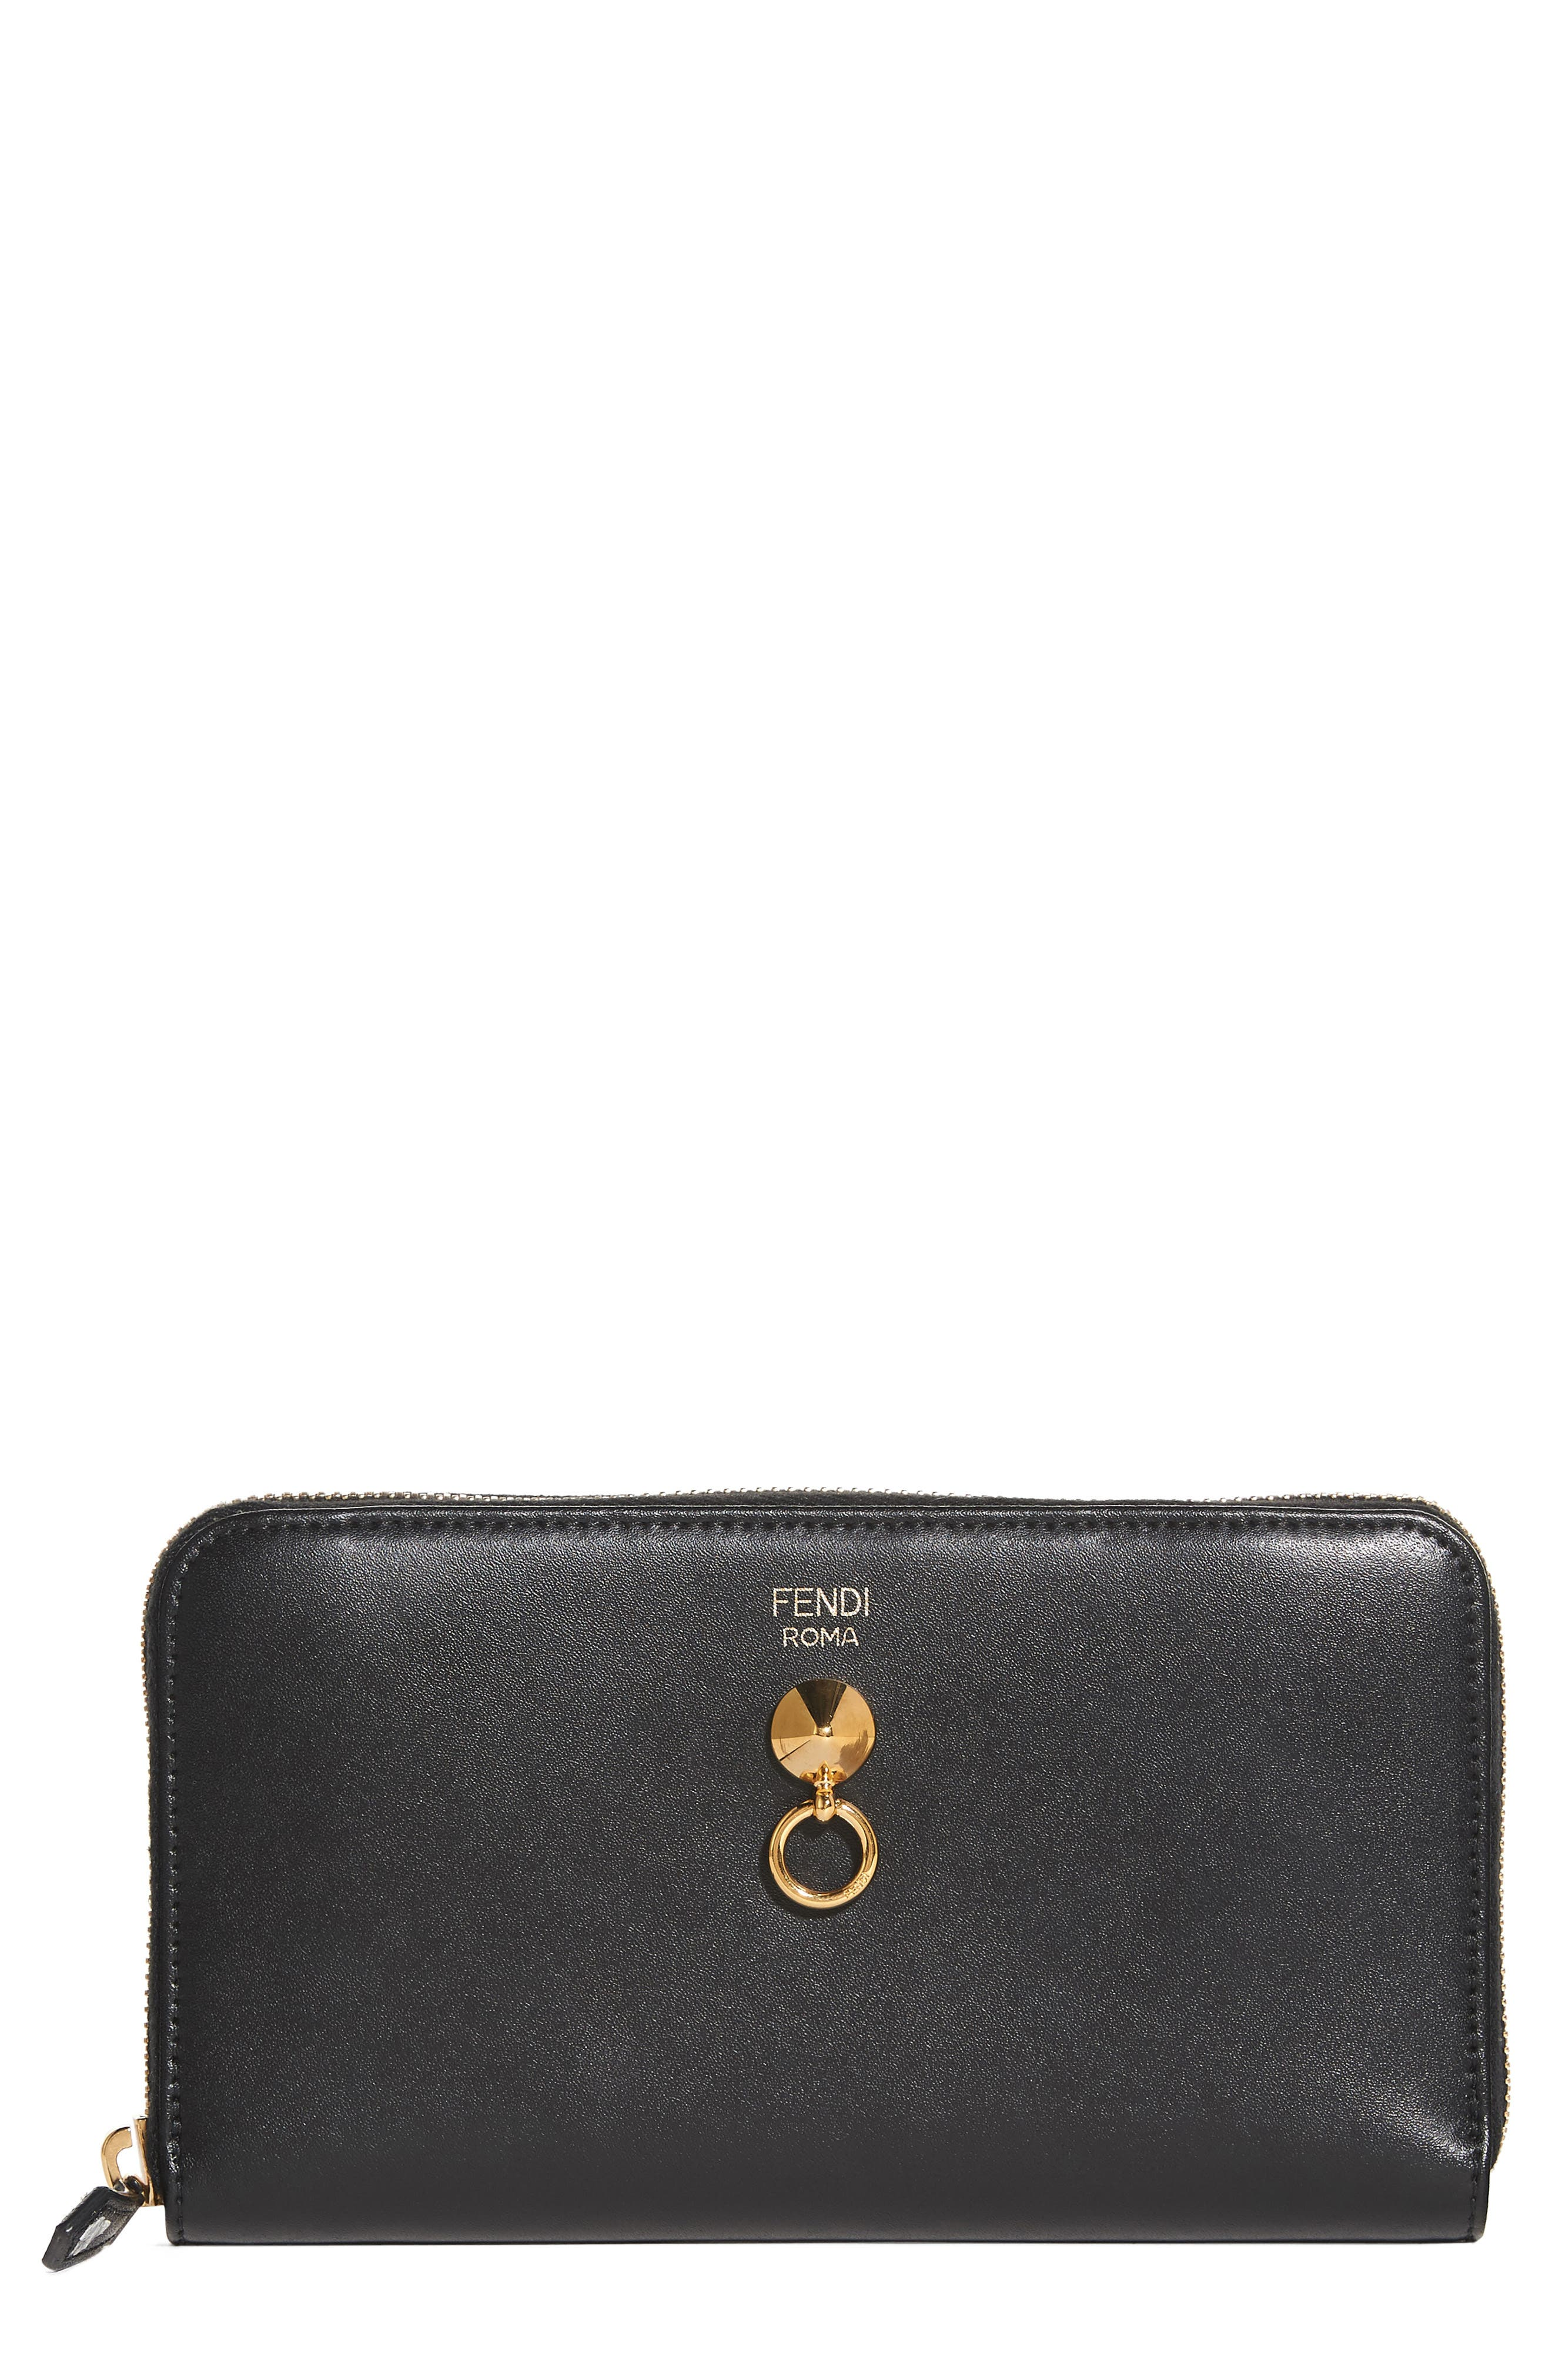 Liberty Leather Zip Around Wallet,                         Main,                         color, Black/Soft Gold